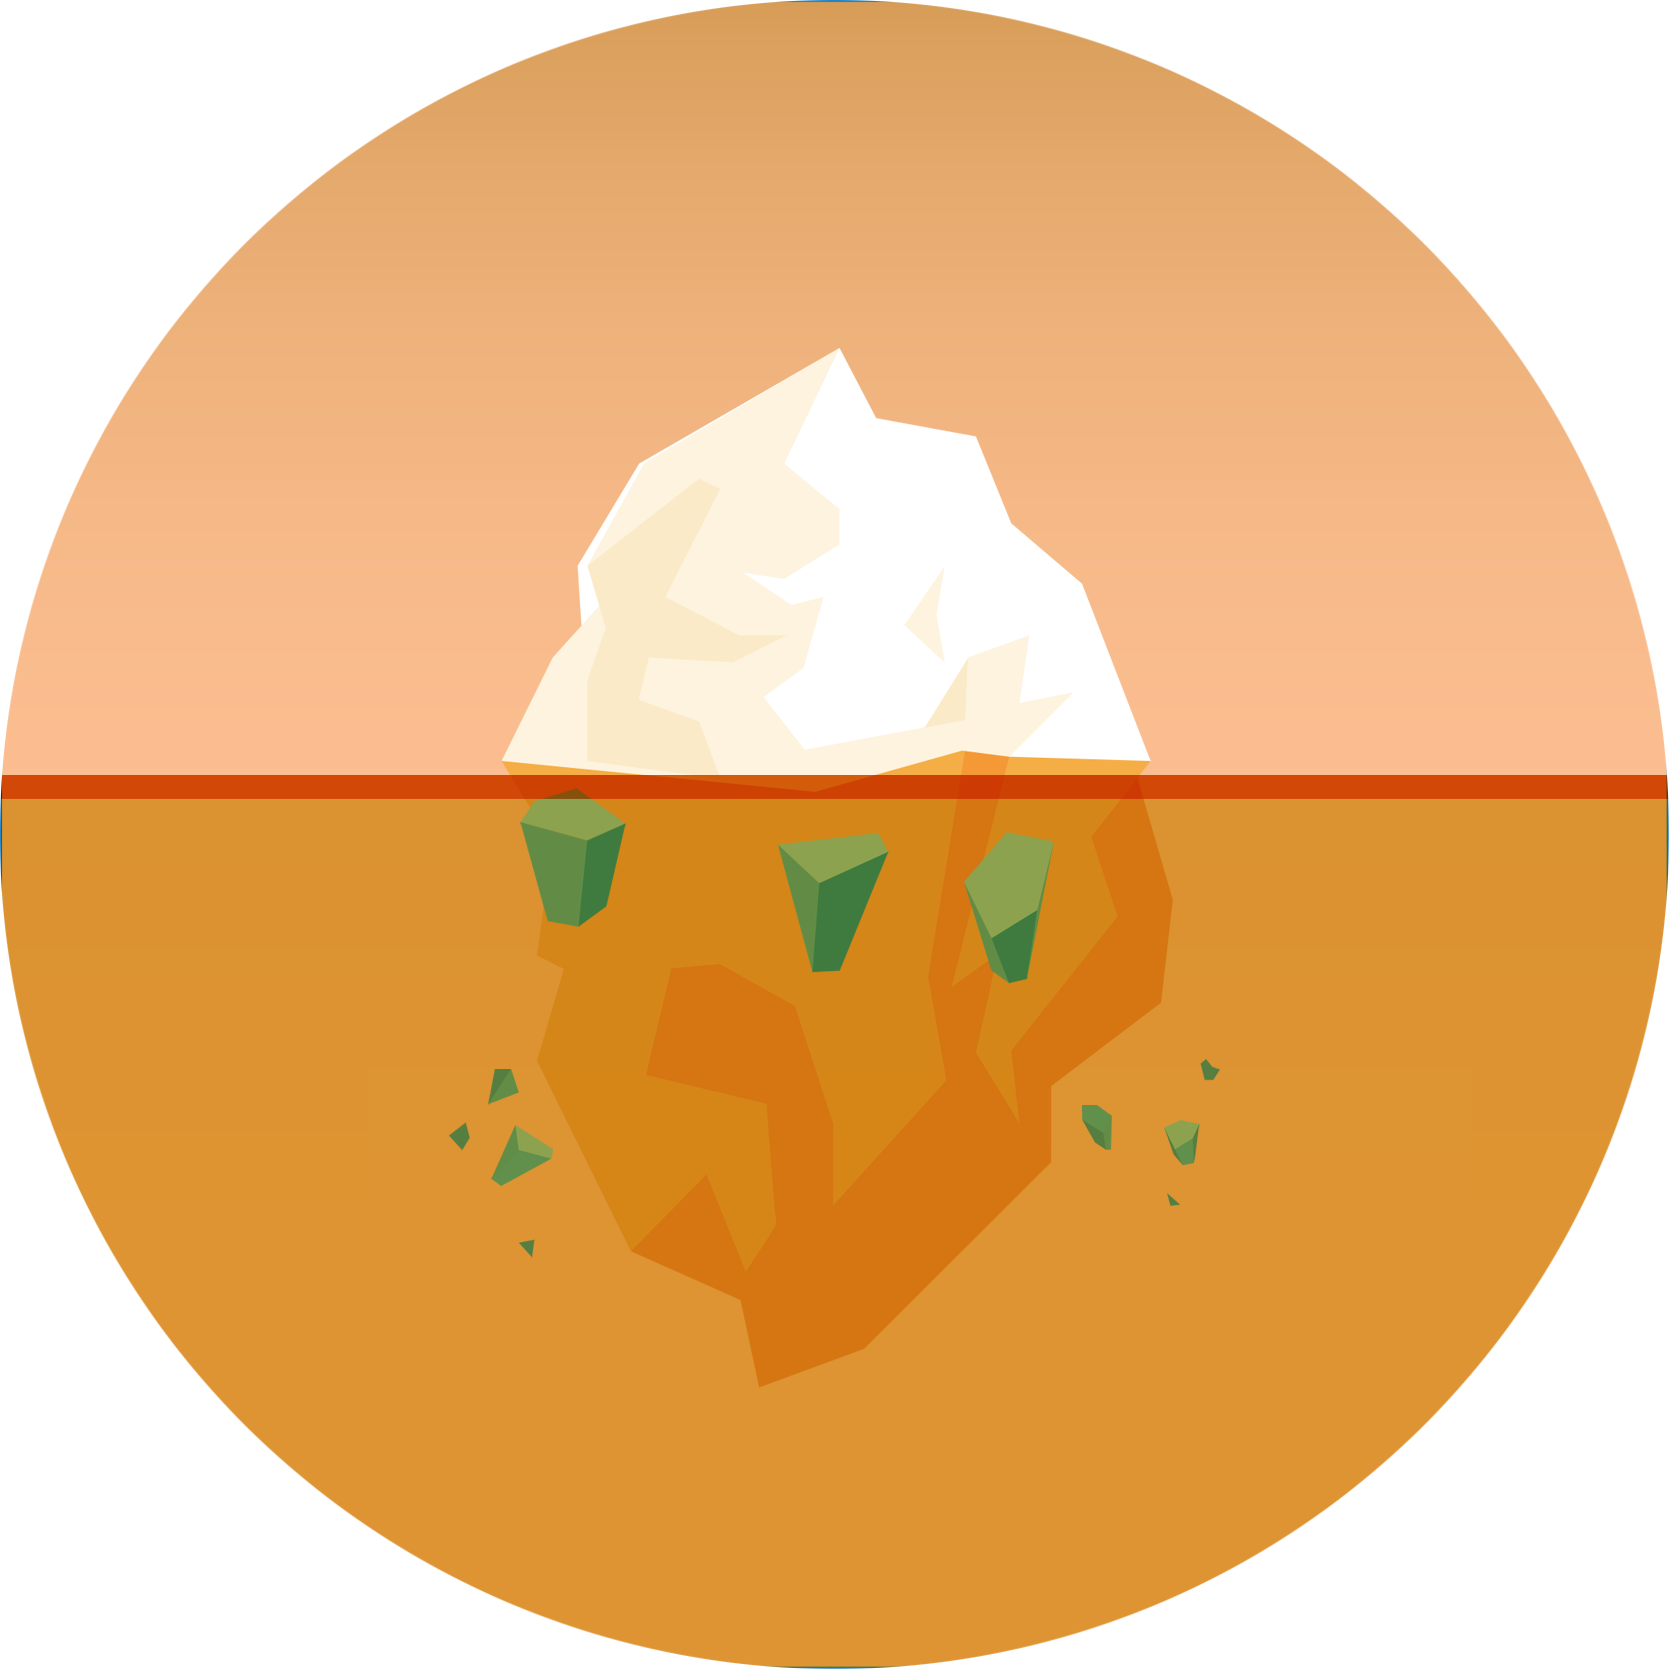 Iceberg graphic